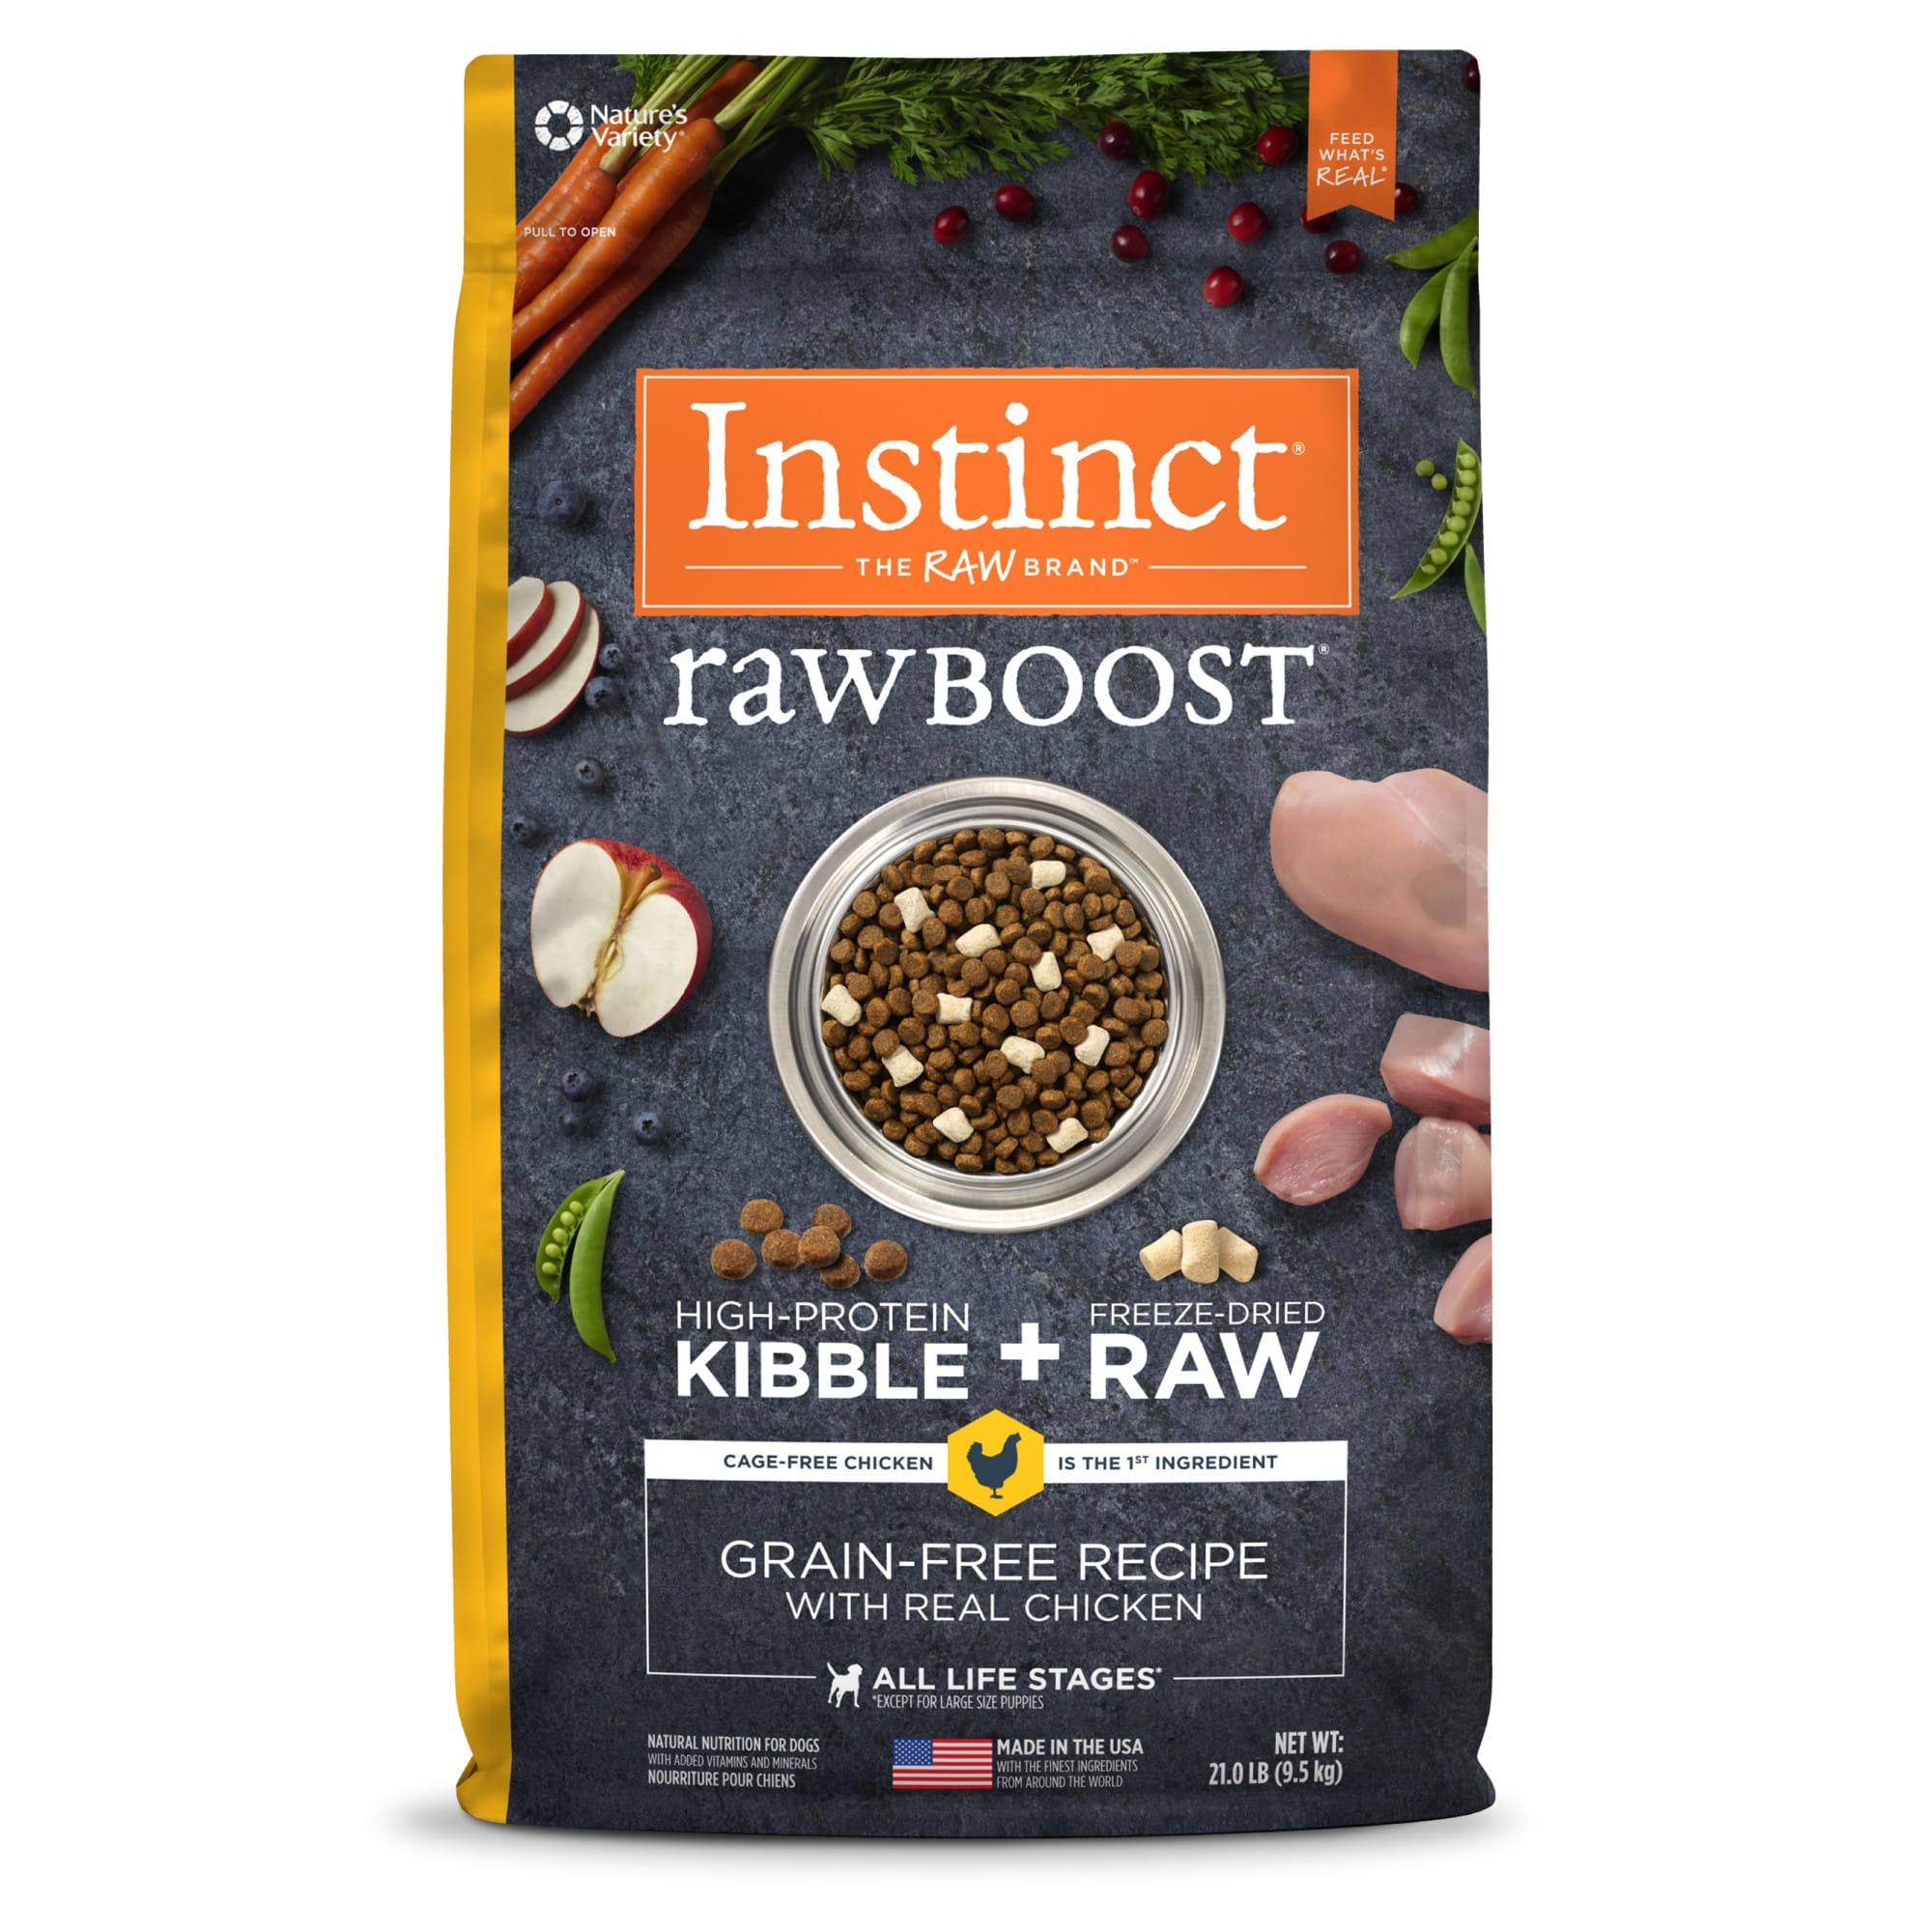 Instinct Raw Boost Grain-Free Recipe with Real Chicken Dry Dog Food with Freeze-Dried Raw Pieces